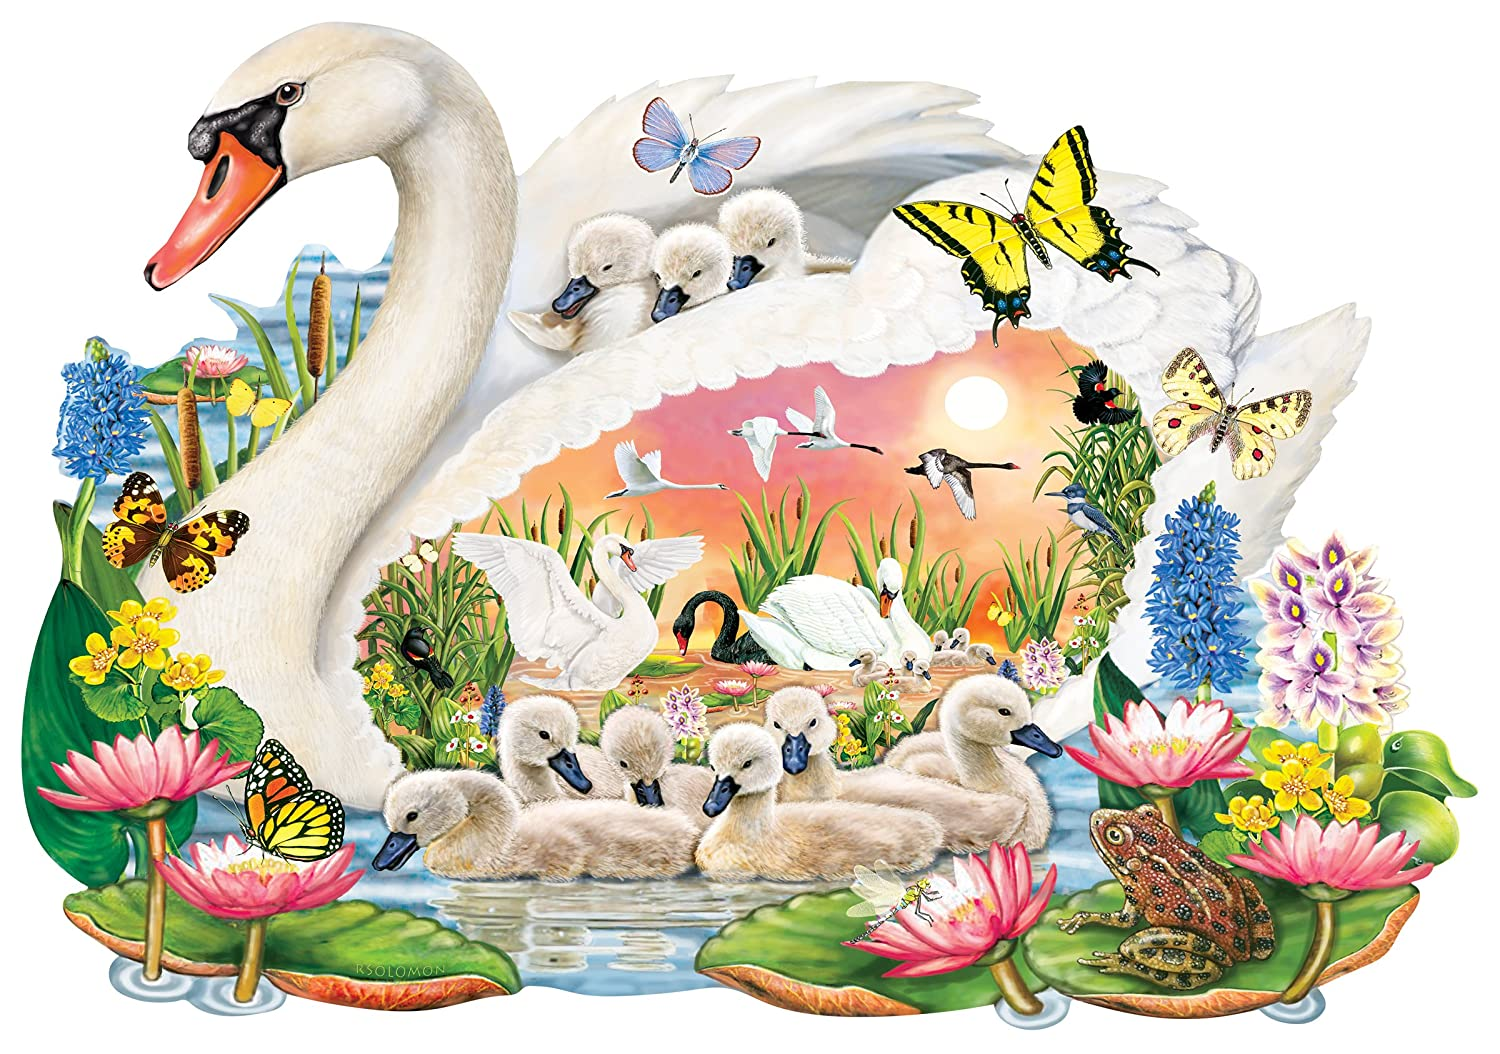 250pc Wentworth Wooden Jigsaw Mother's Puzzles - puzzle). Mute Swan (shaped Wooden puzzle). Perfect Mother's Day Gift B079VPXQMG, CLAMP:850461a8 --- ero-shop-kupidon.ru